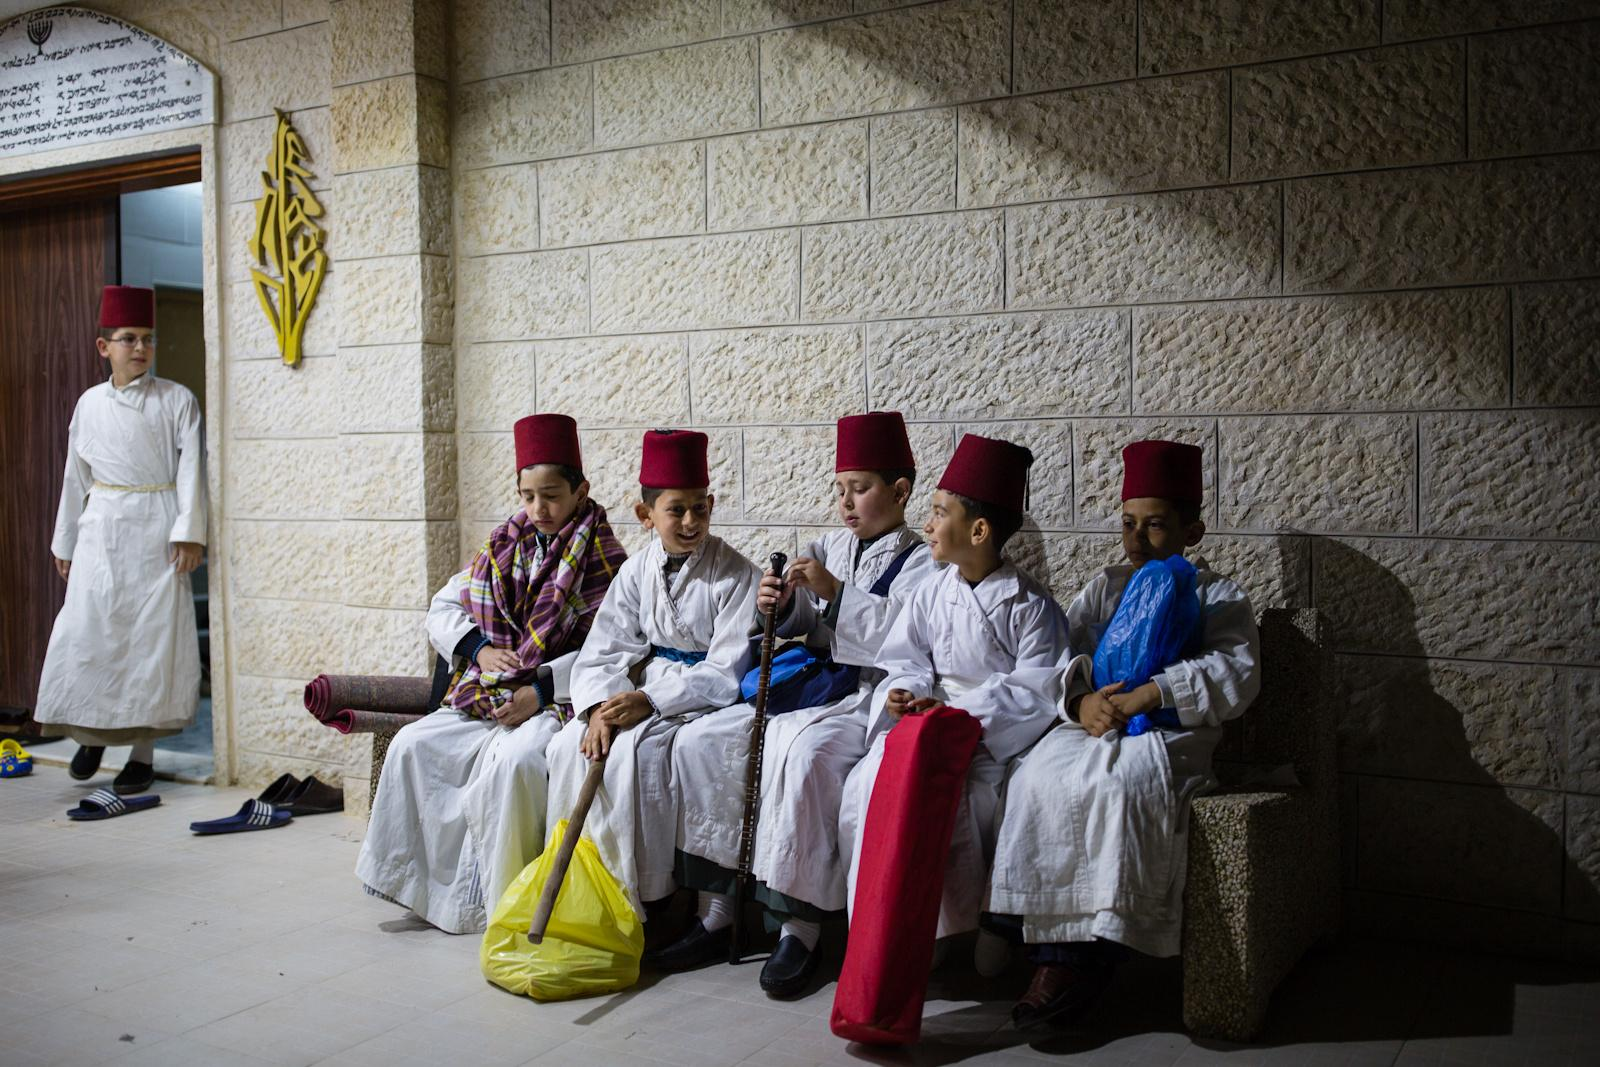 NABLUS, PALESTINIAN TERRITORIES - APRIL 27, 2016: Samaritan children sit outside a synagogue during a pilgrimage marking the holiday of Passover at Mount Gerizim on the outskirts of the West City of Nablus April 27, 2016. The Samaritan religion is descended from the ancient Israelite tribes of Menashe and Efraim, and the community numbers today around 700 people, half at Mount Grizim in the West Bank and the others in Holon near Tel Aviv in Israel.